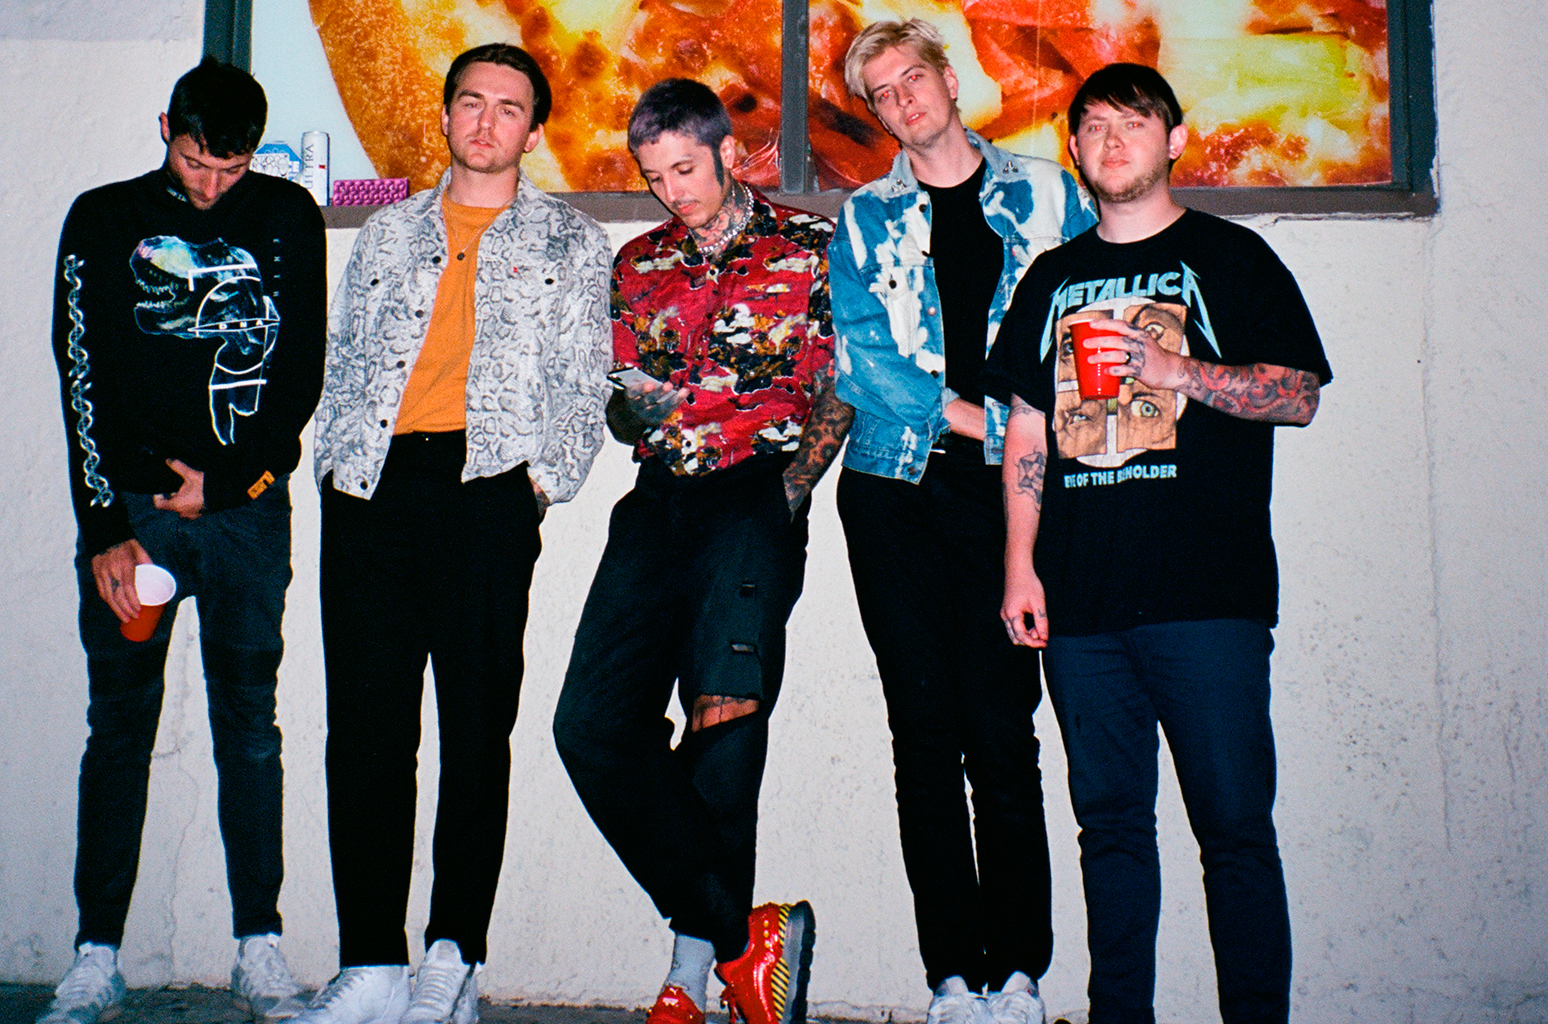 Bring Me The Horizon - The metal lads evolve more into pop and electronic music in their new album, amo.